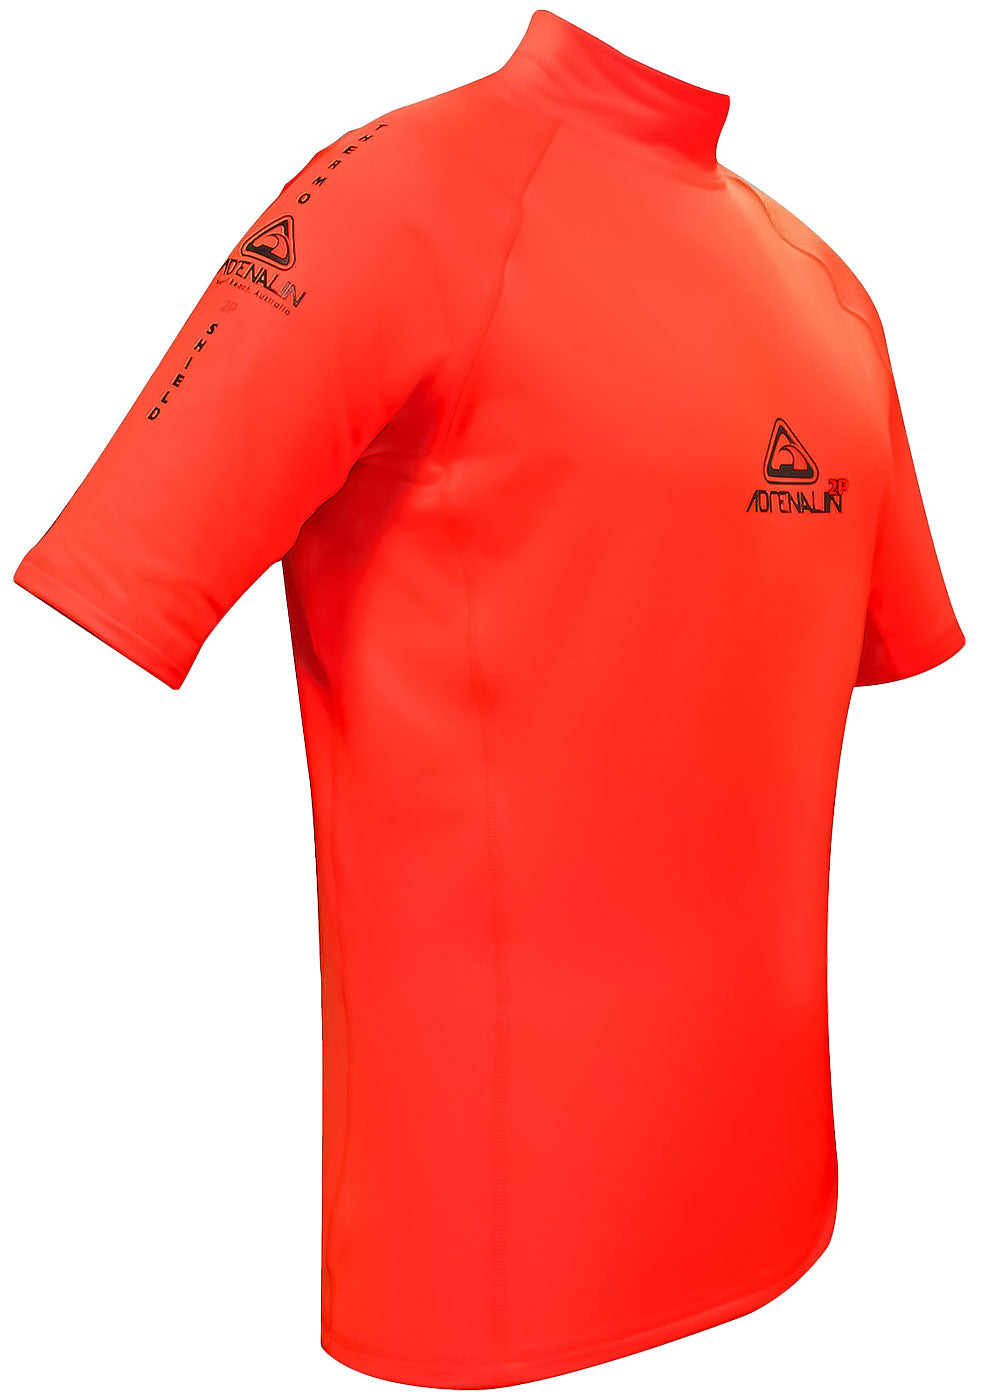 Adrenalin 2P Thermal short Sleeve Rash Guard red buy online rashie